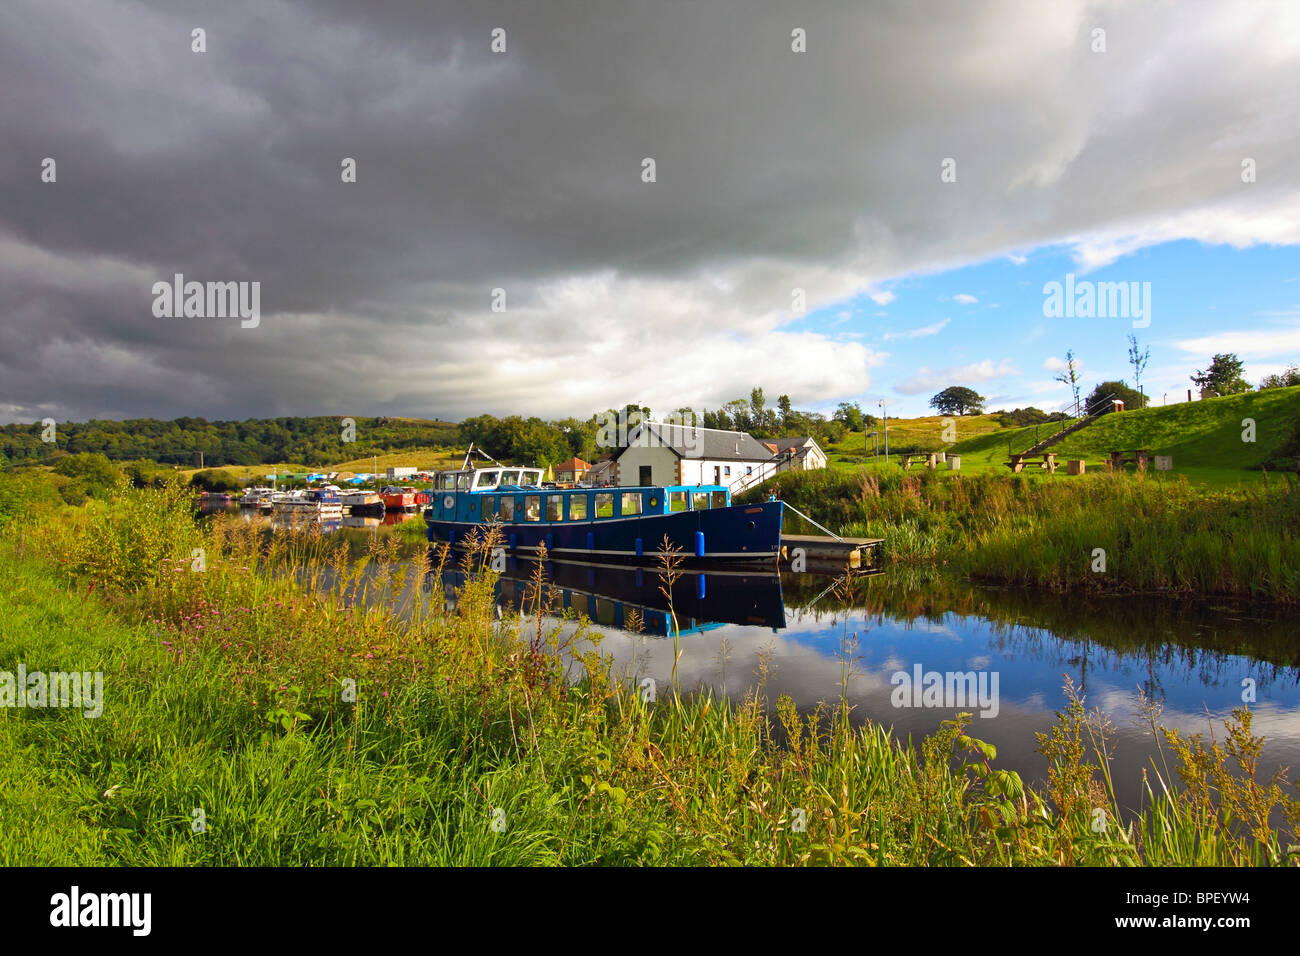 Forth and Clyde canal in the afternoon - Stock Image